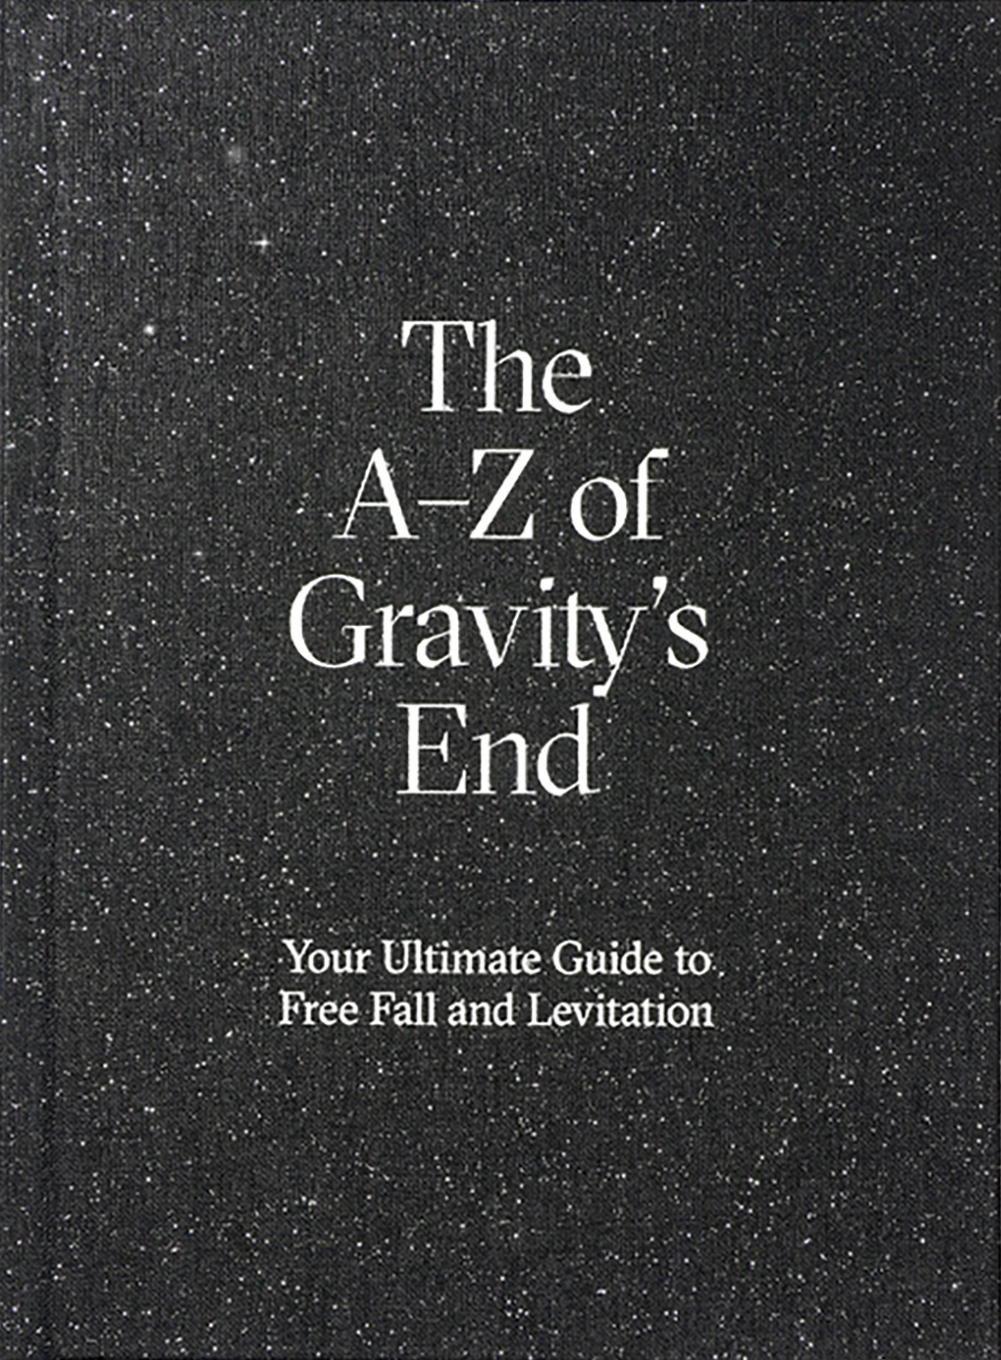 The A–Z of Gravity's End  – Your Ultimate Guide to Free Fall and Levitation